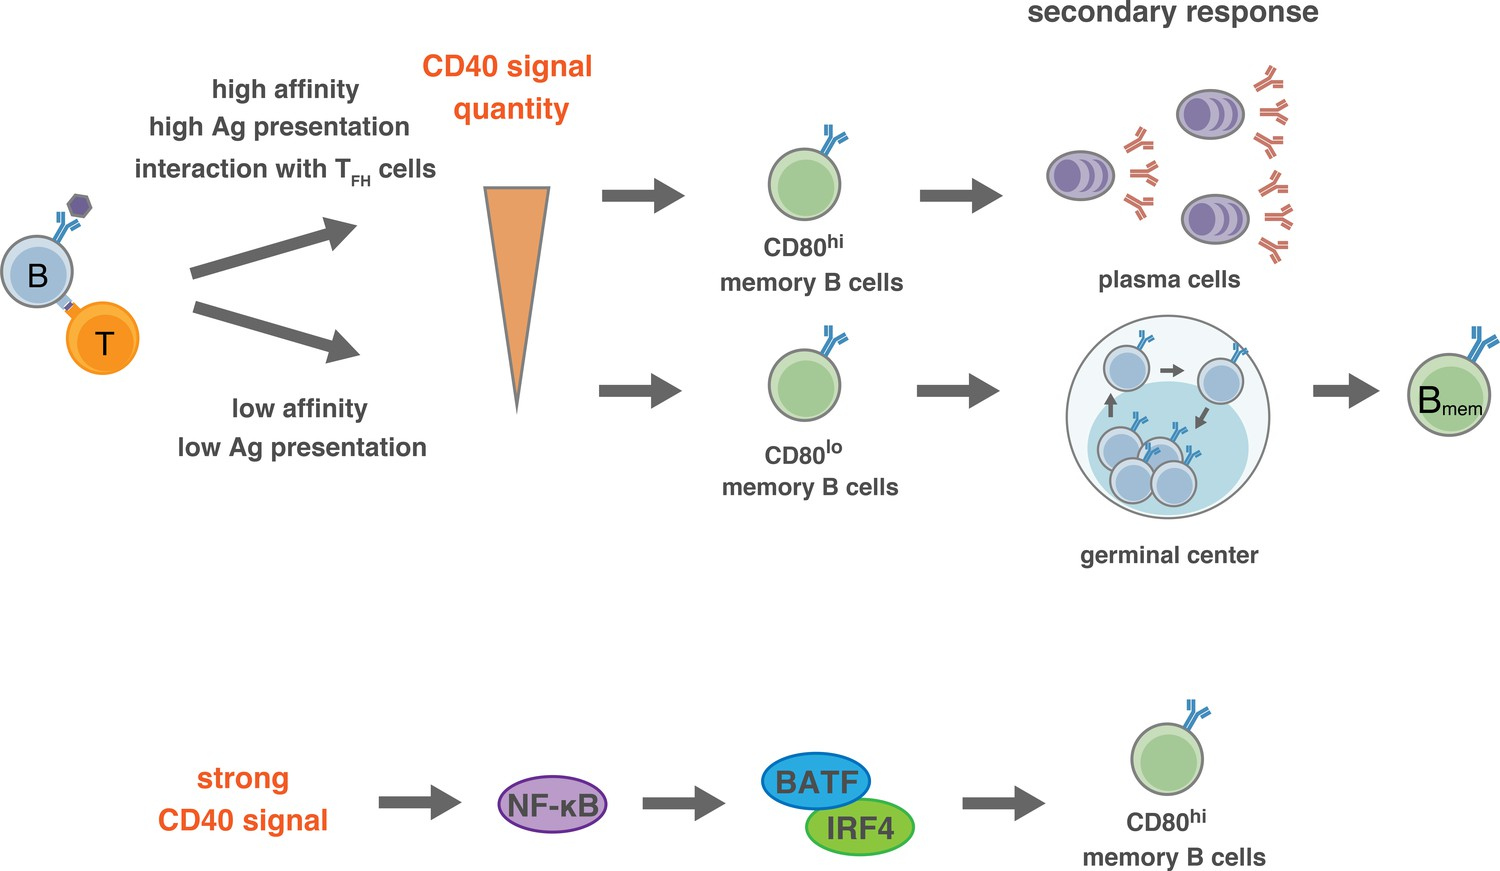 The quantity of CD40 signaling determines the